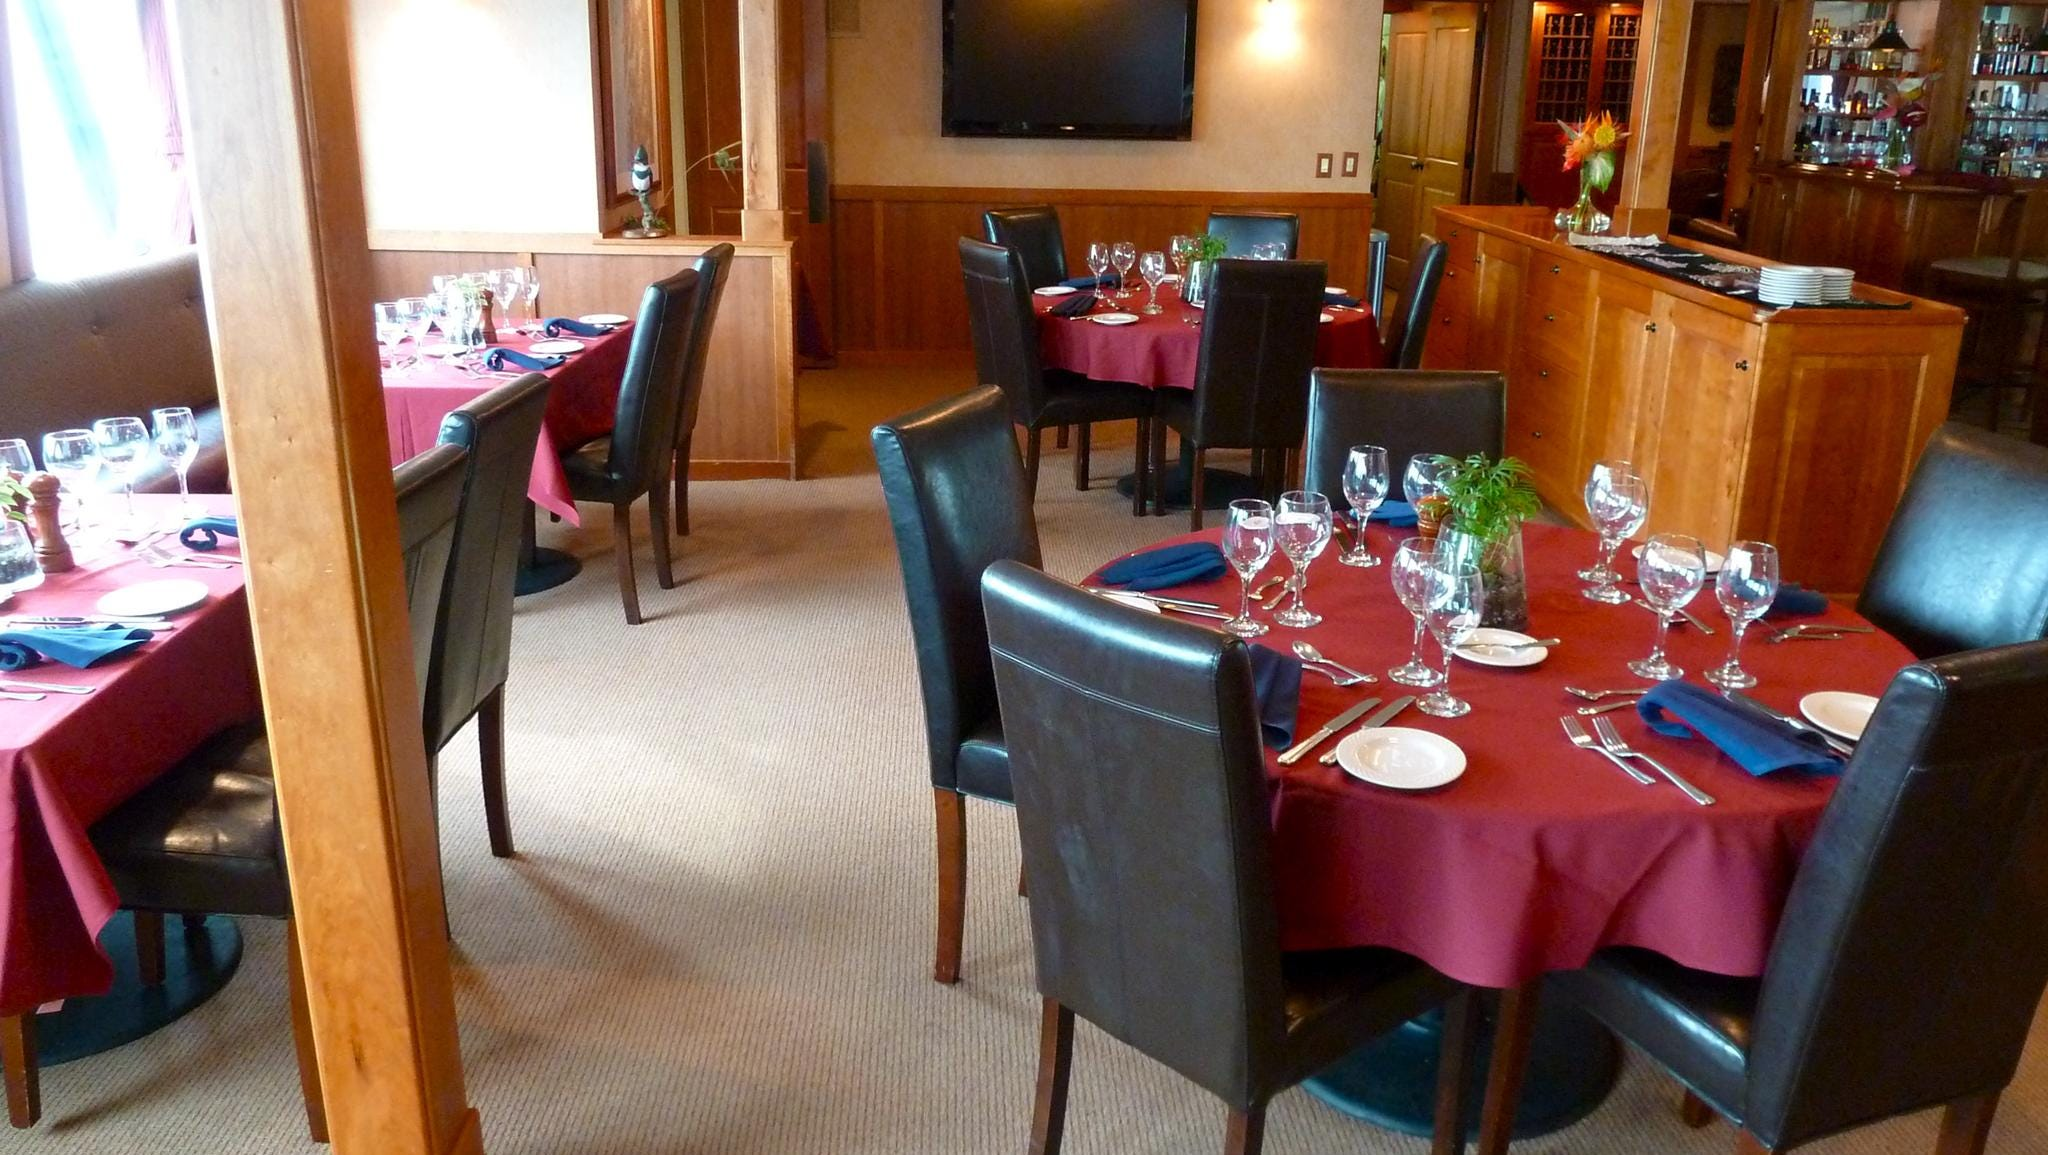 Directly across from the Lounge, the Dining Room has several booths and tables. Meal times are fixed according to the itinerary but guests may sit where and with whom they choose.